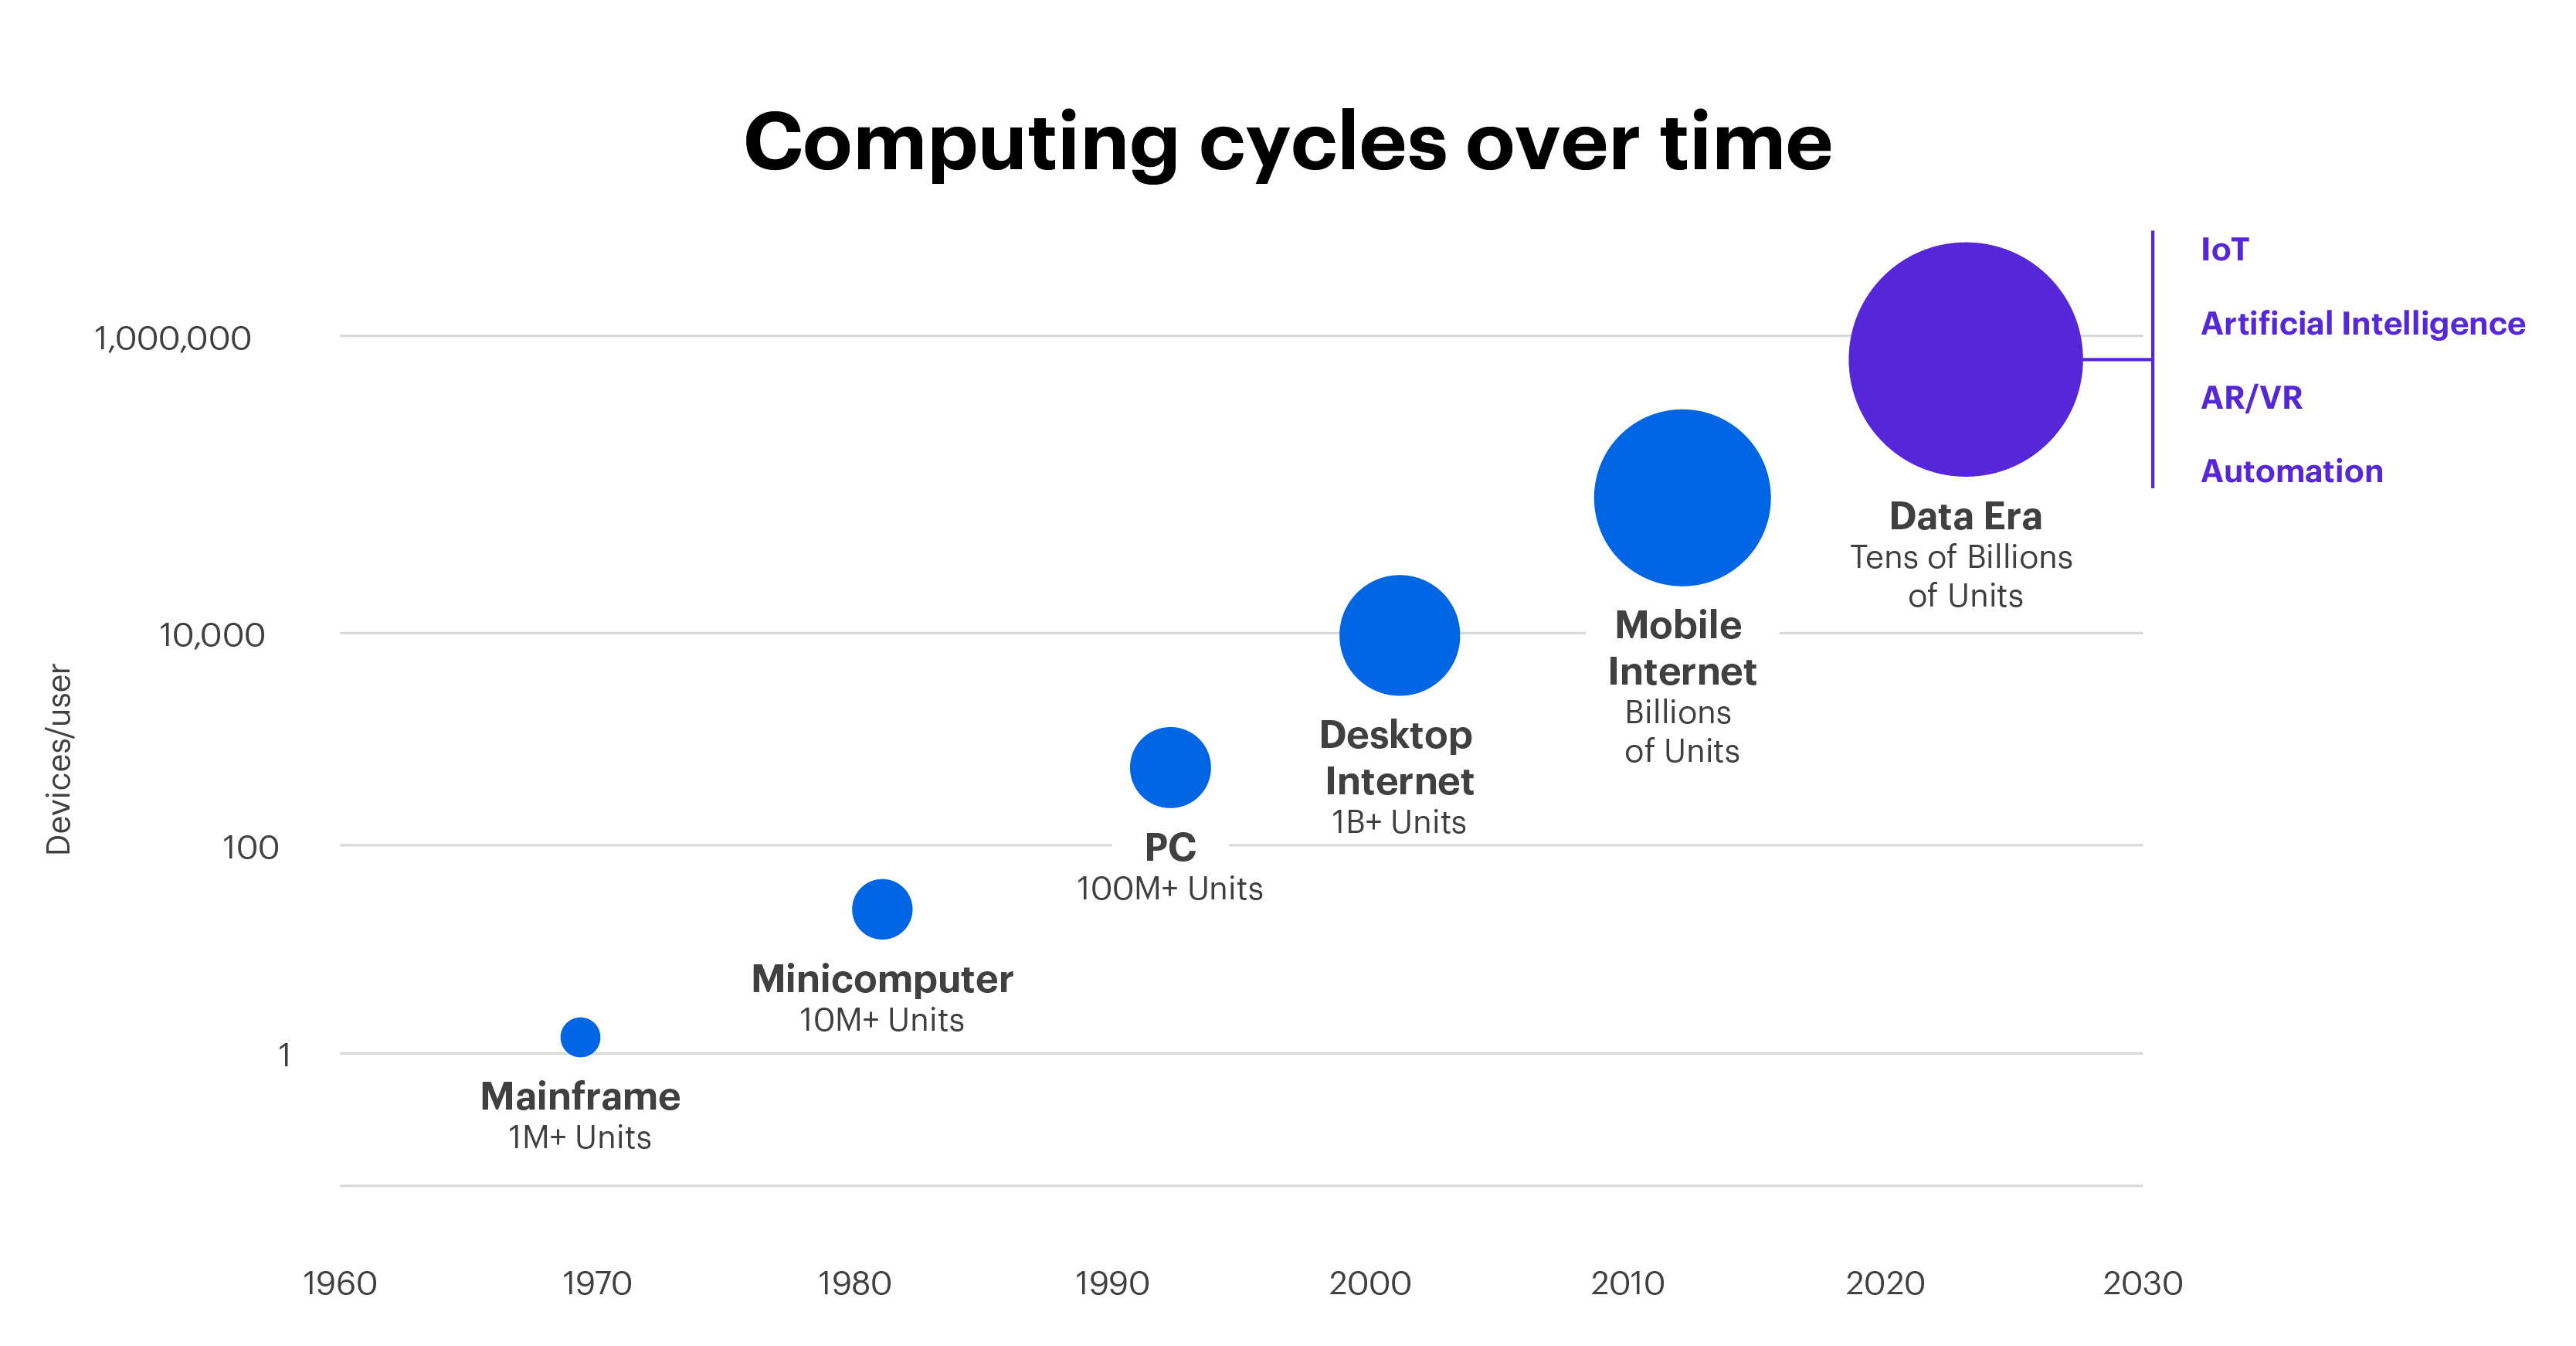 Chart - Computing cycles over time 1960-2030